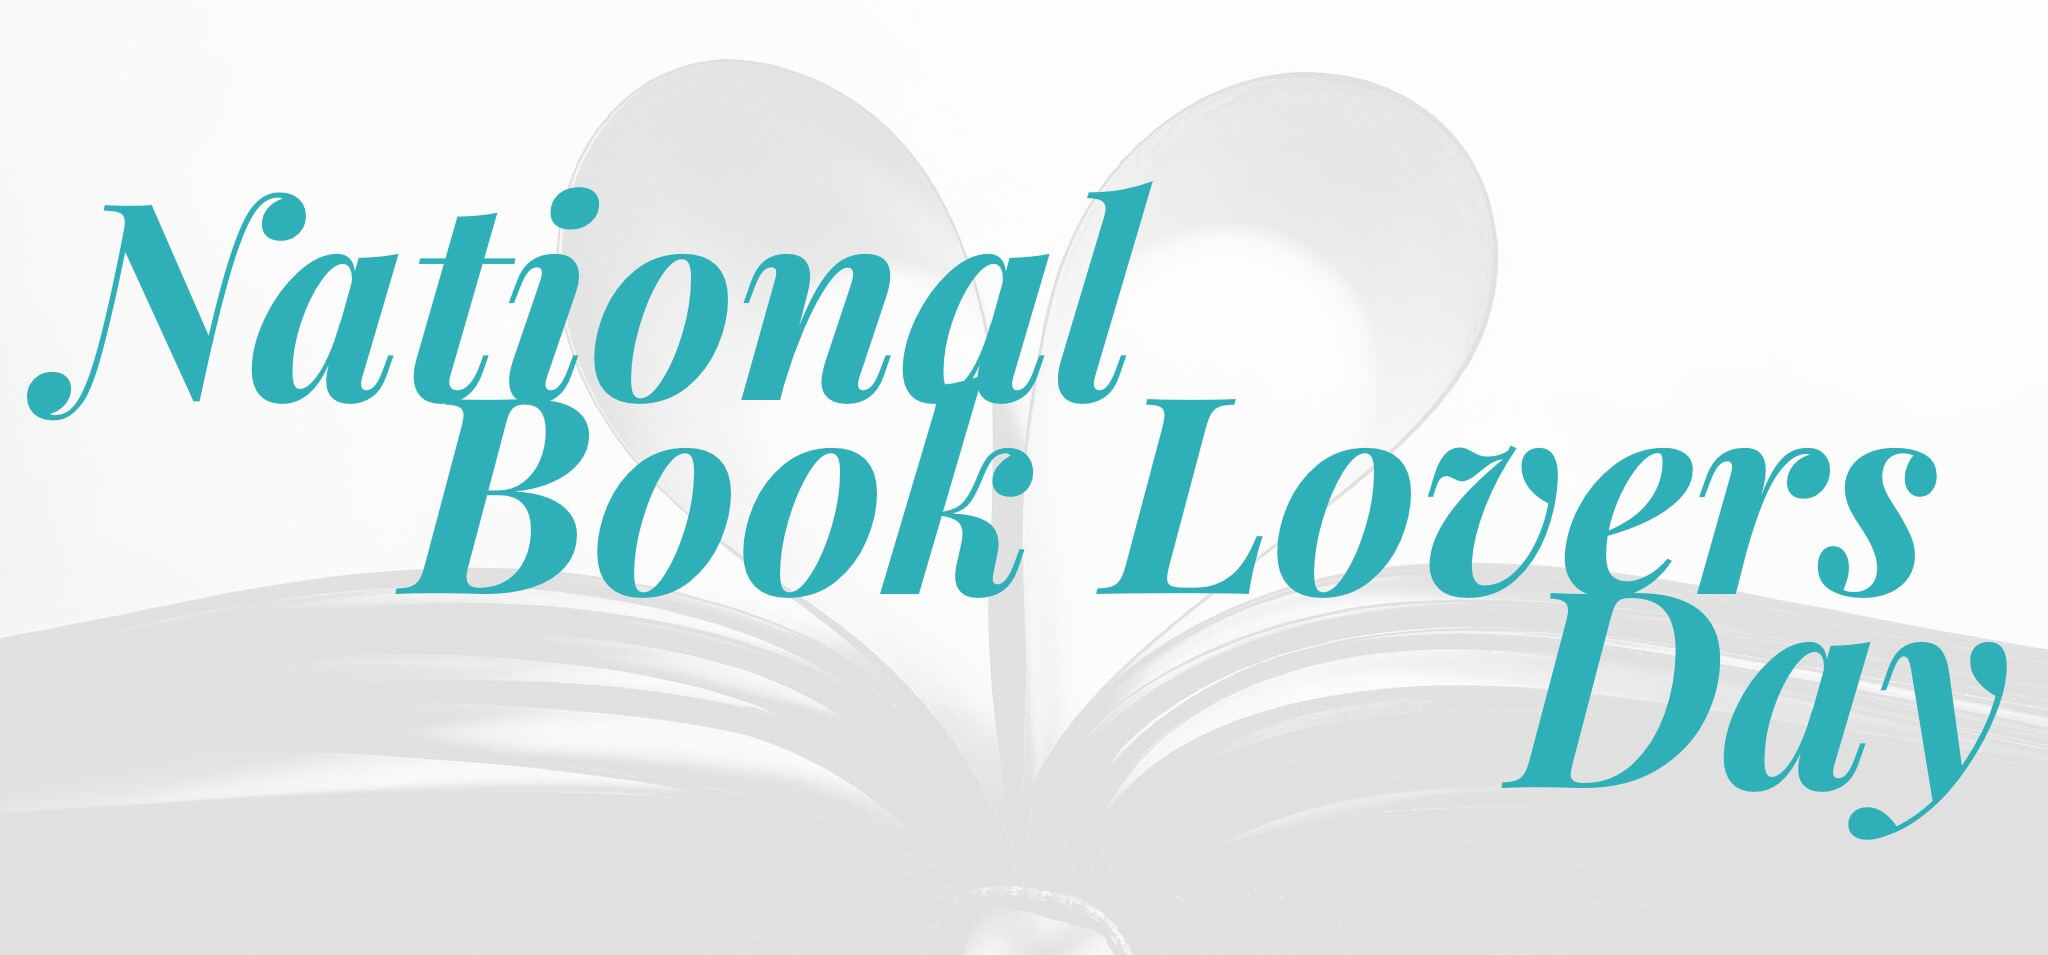 Tag/homeschooling families - Celebrate National Book Lovers Day